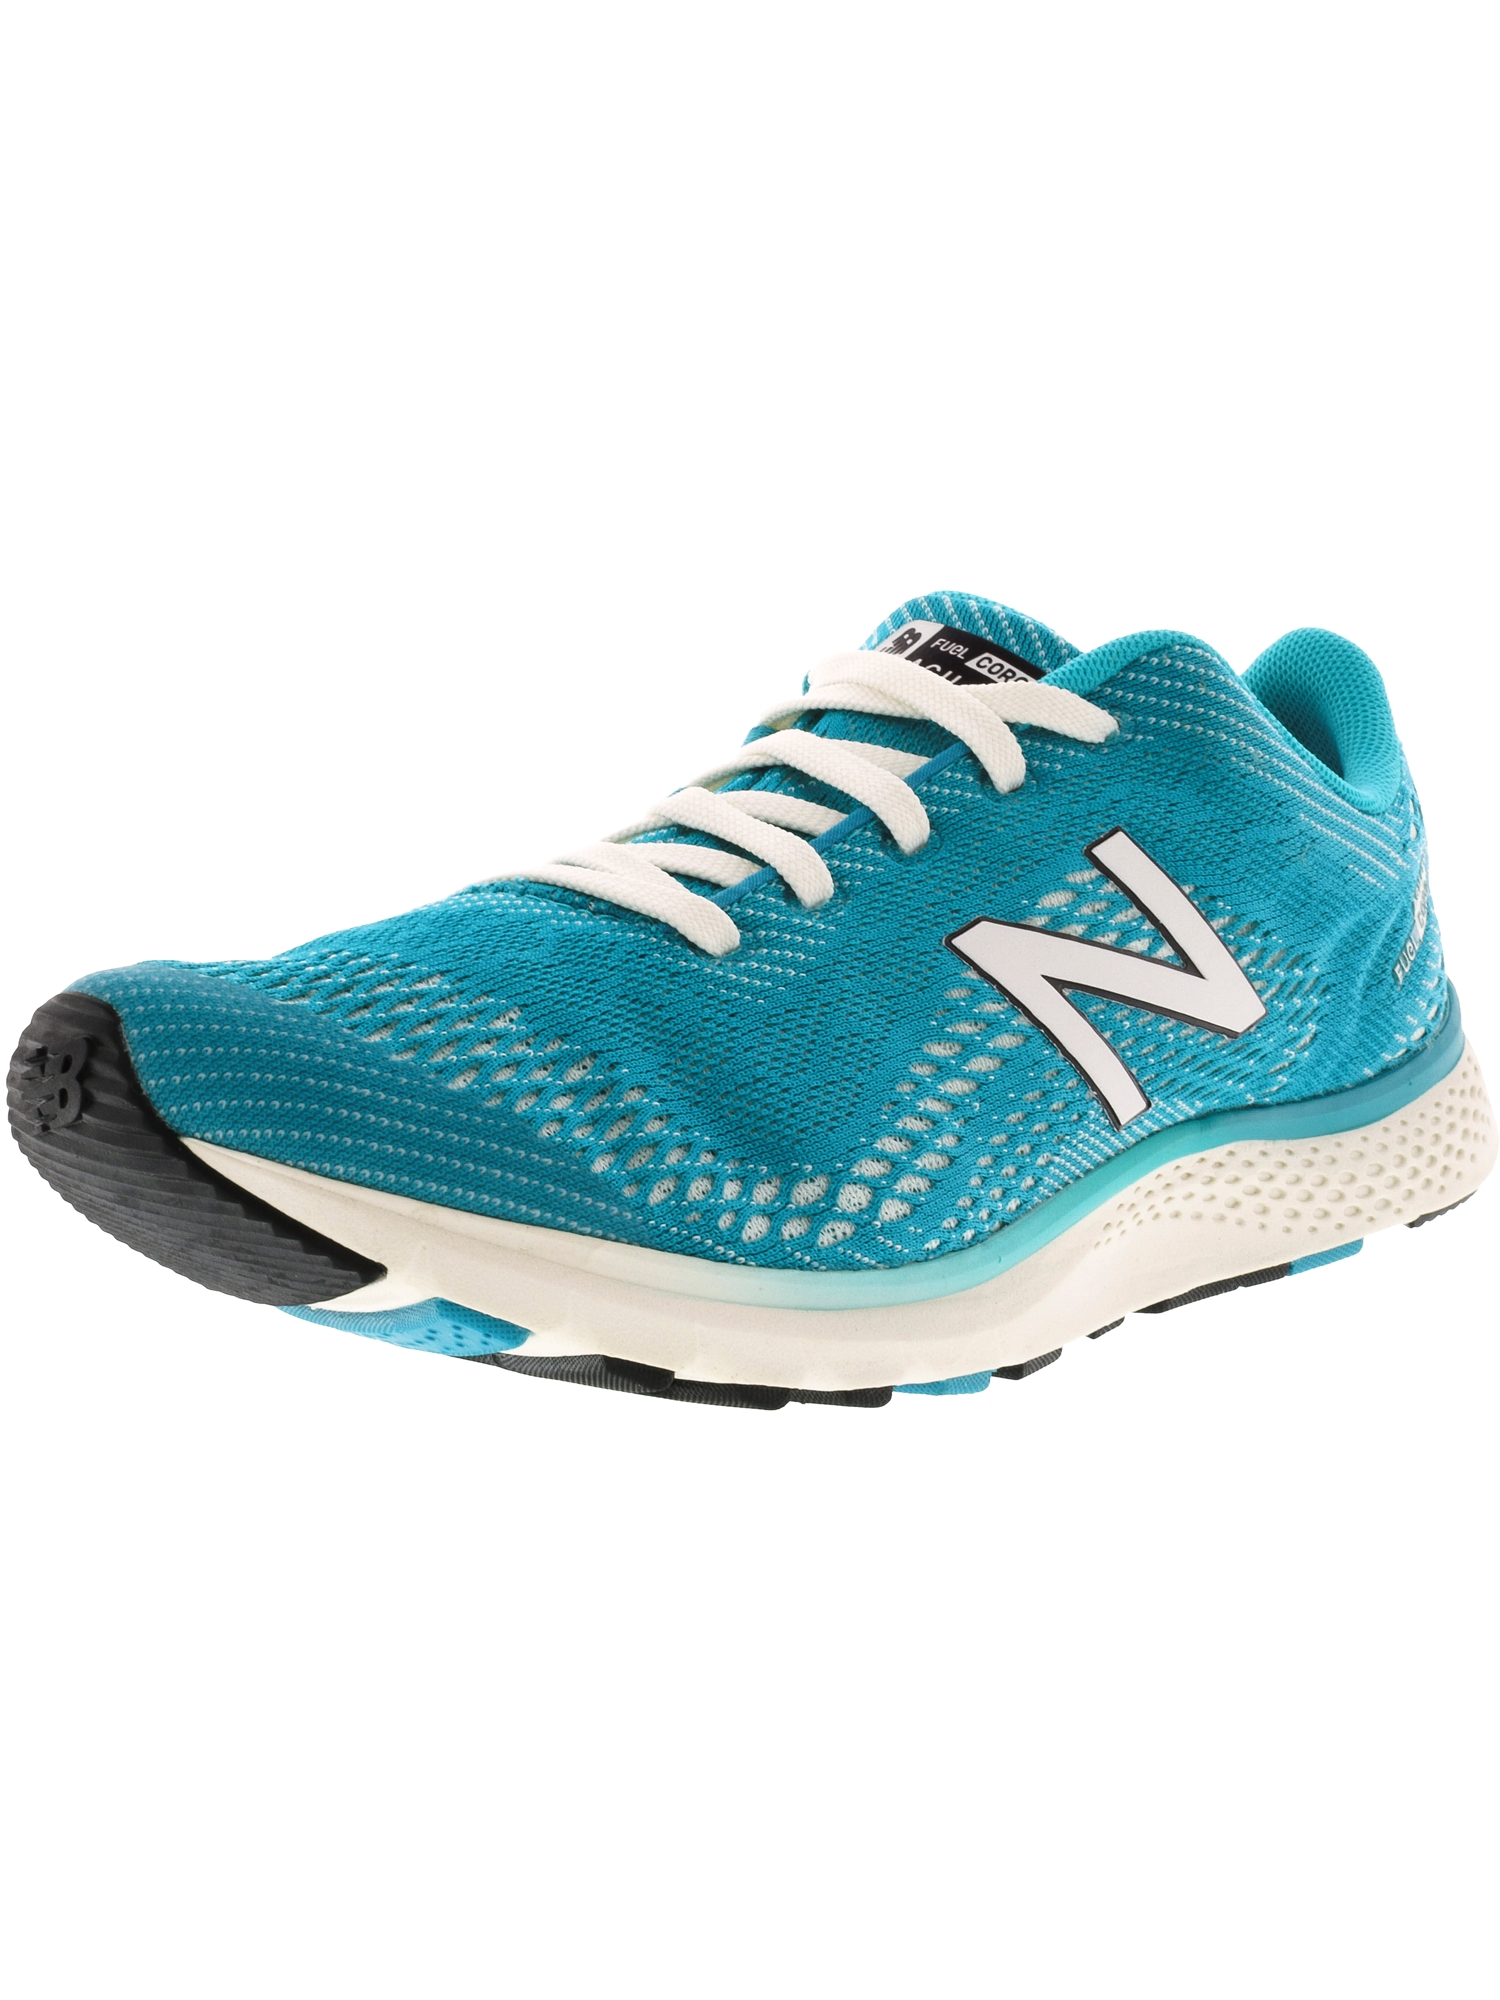 New Balance Women's Wxagl Pm2 Ankle-High Walking Shoe 7M by New Balance